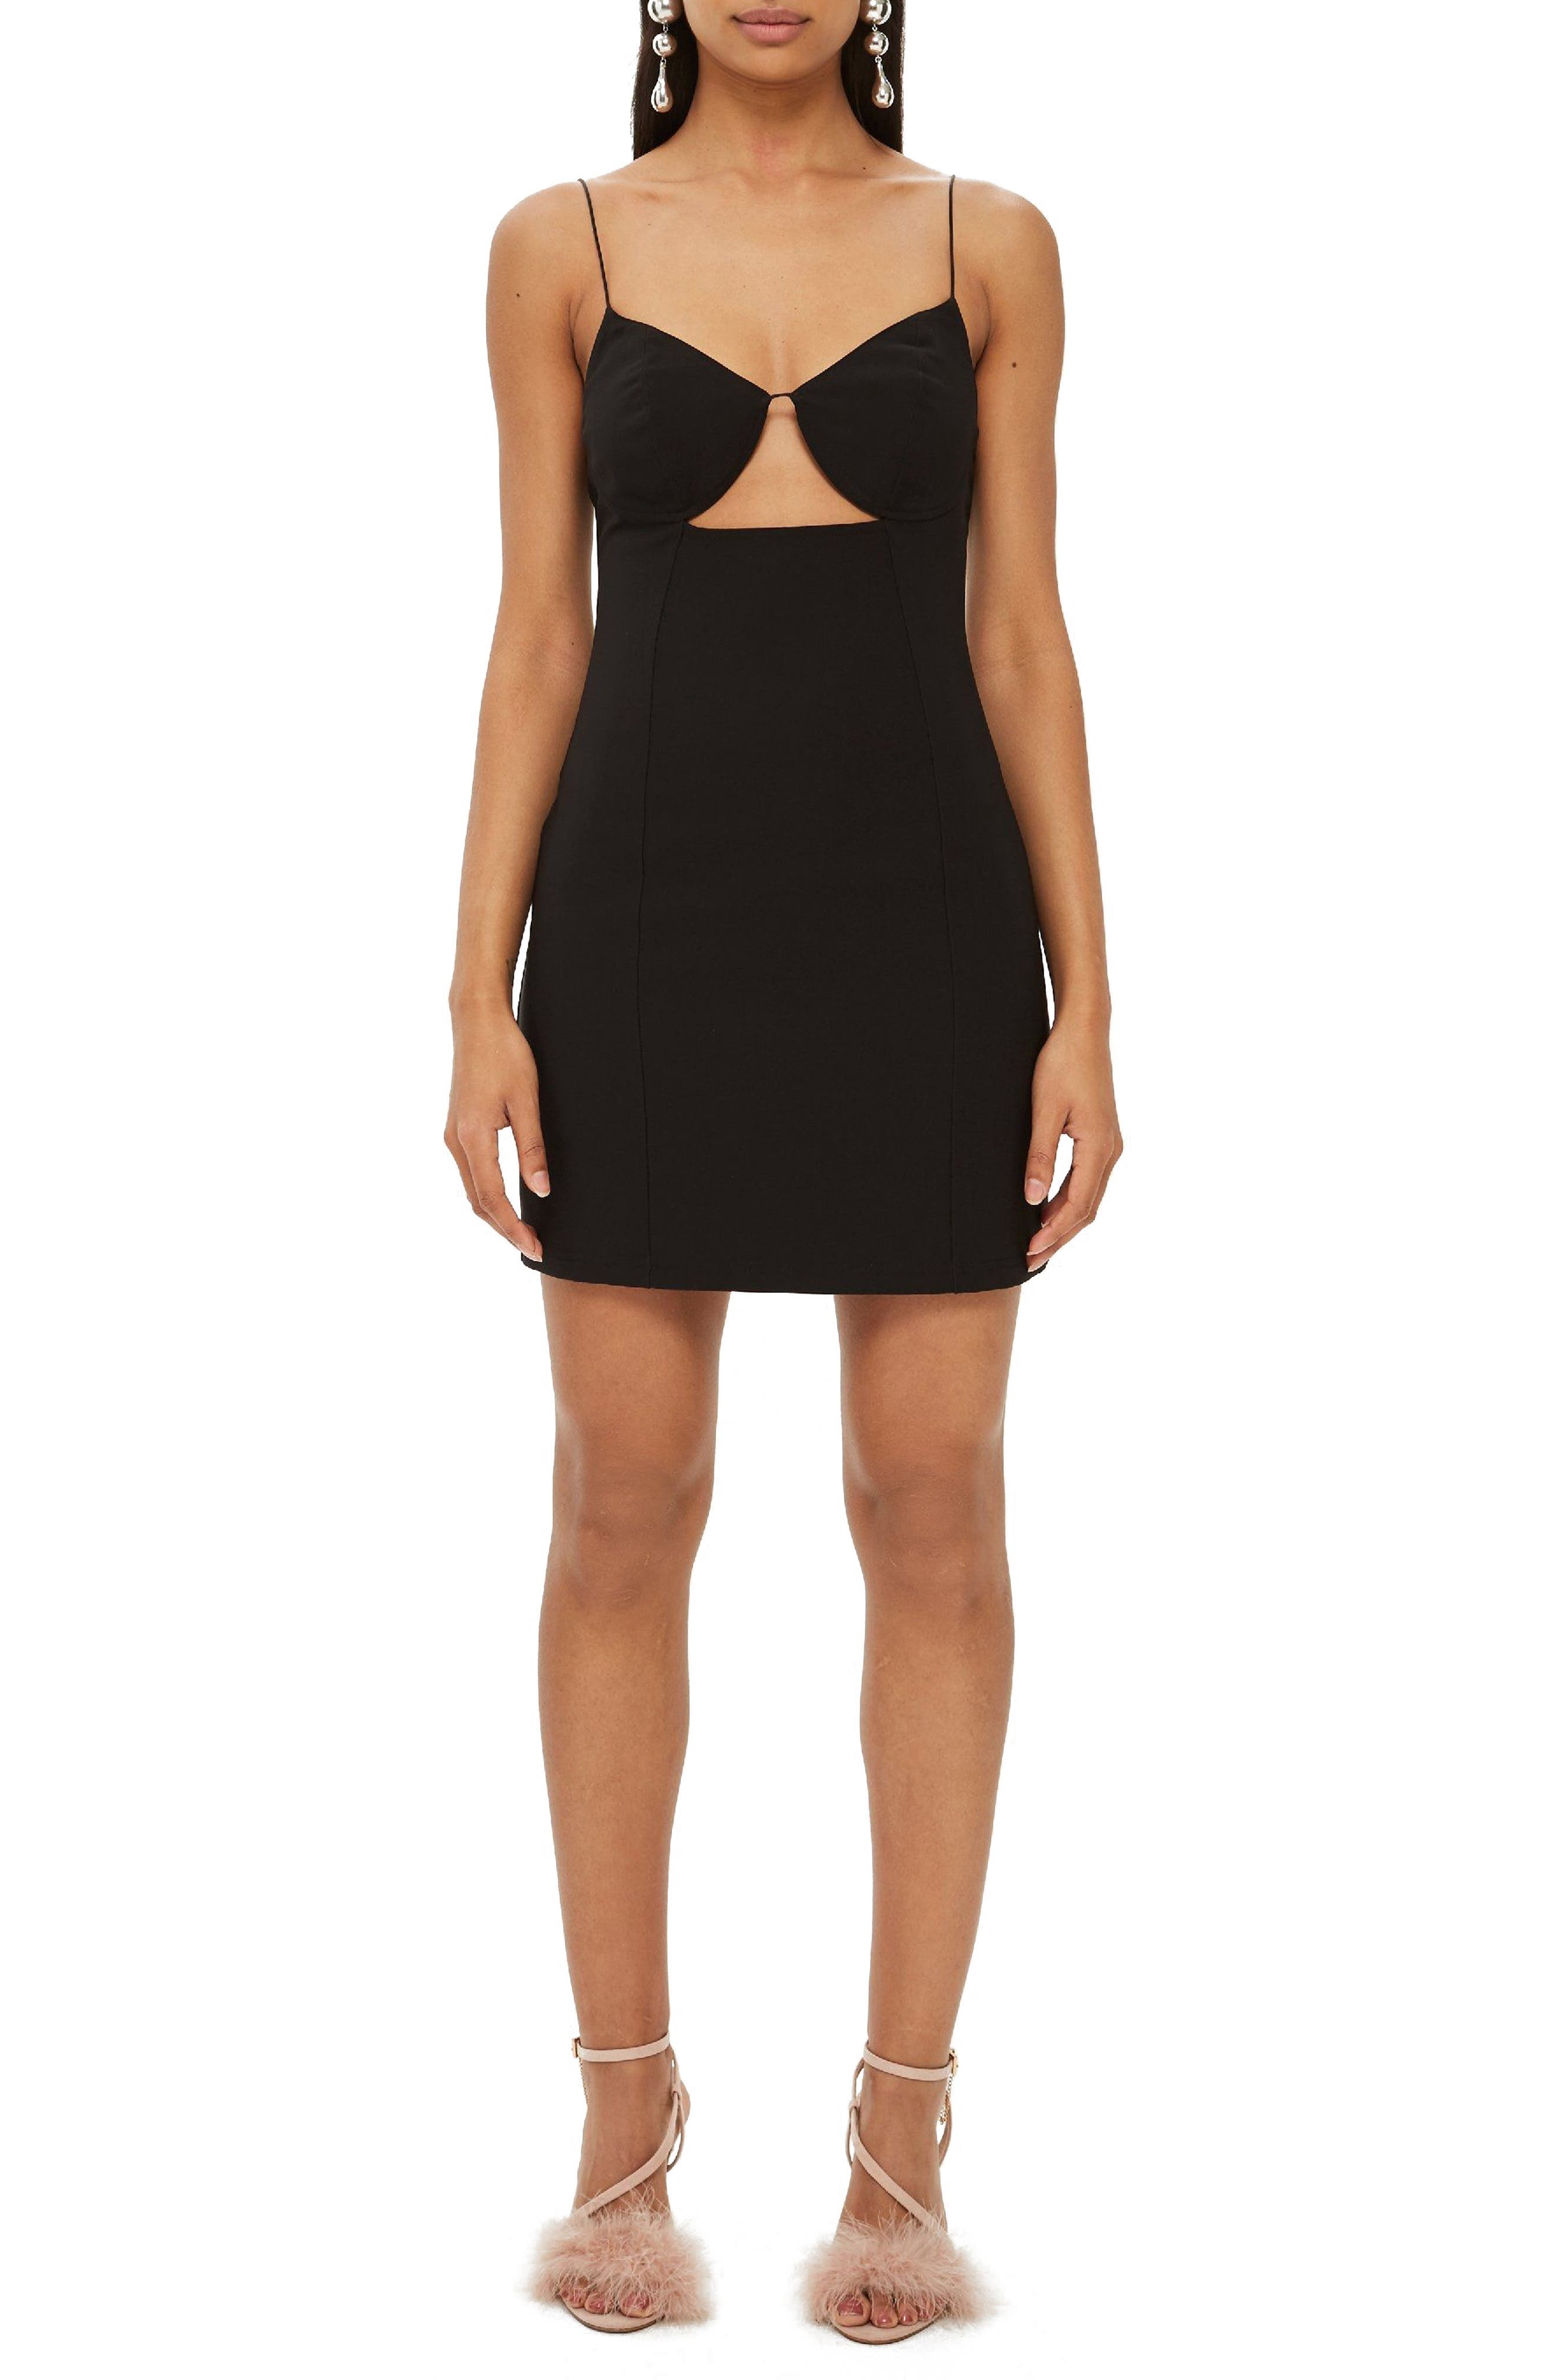 Topshop Deconstructed Bralet Body-Con Minidress, US (fits like 16-18) - Black